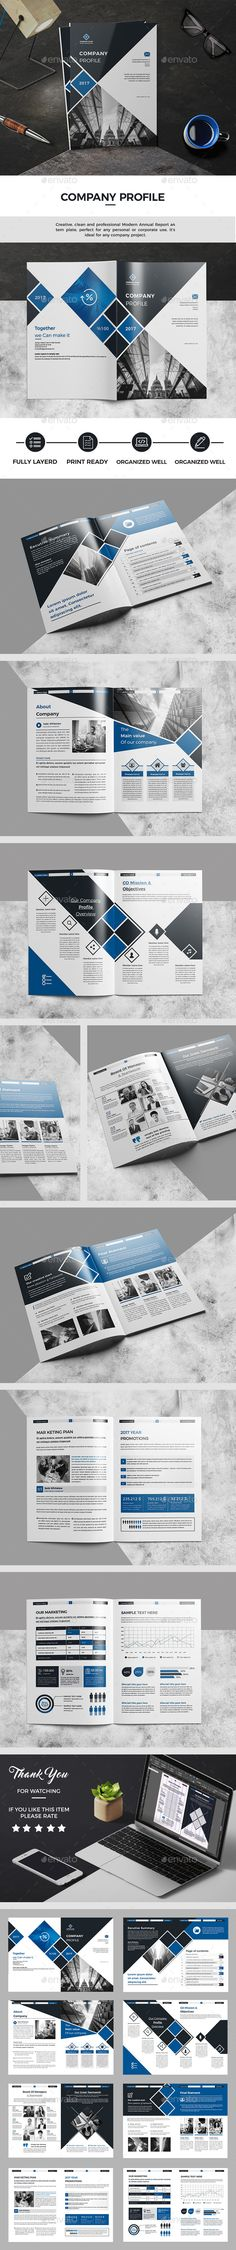 Company Profile Company profile, Profile and Brochures - profile company template